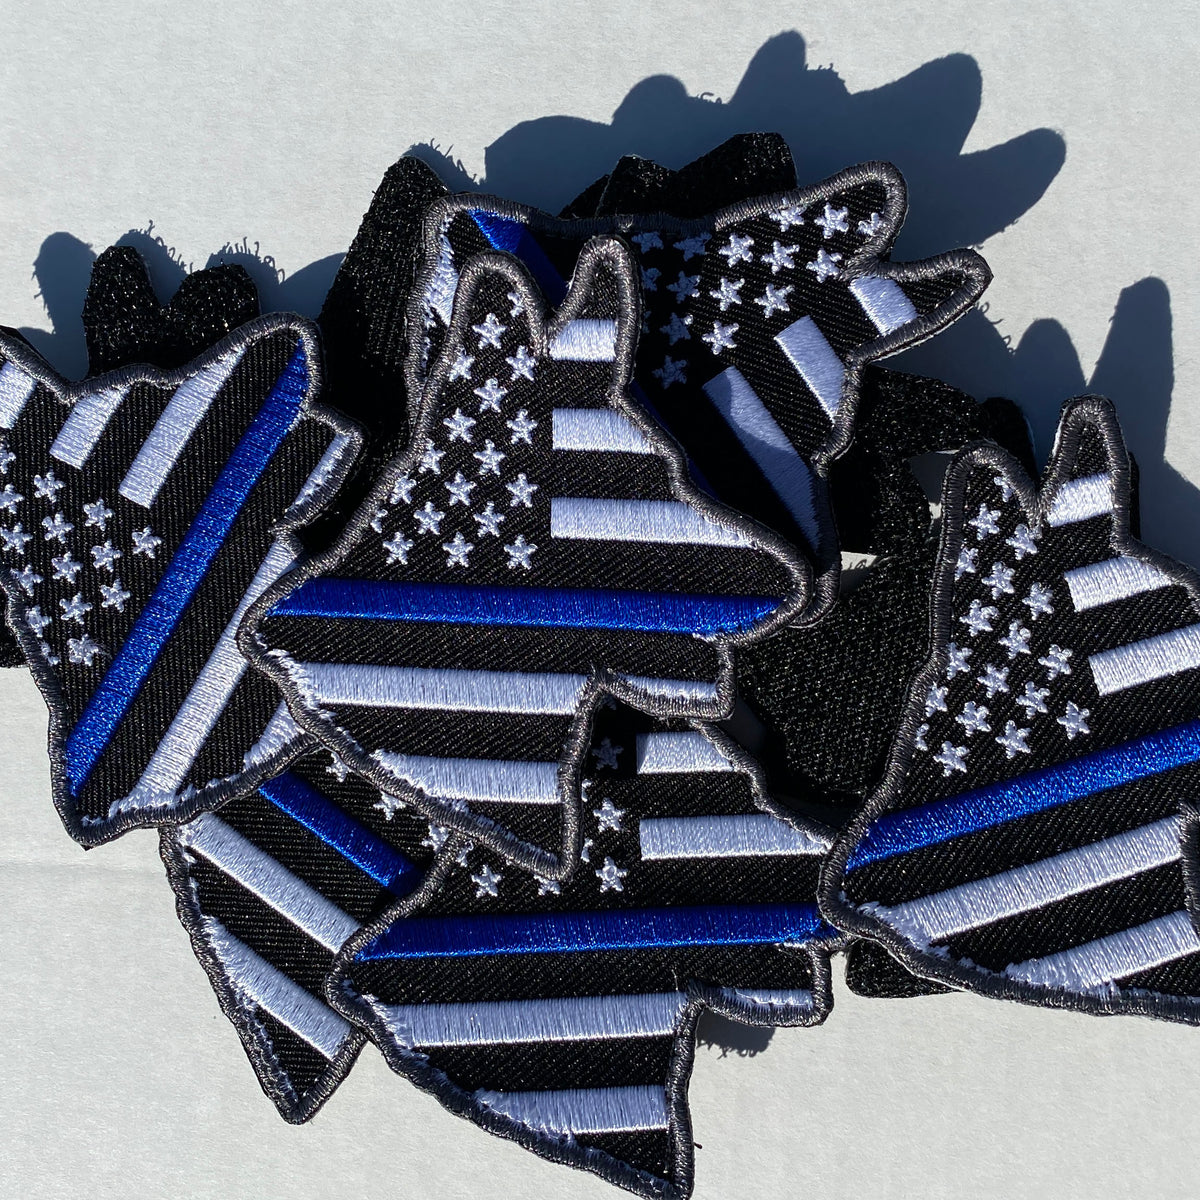 K-9 USA Thin Blue Line Flag Patch